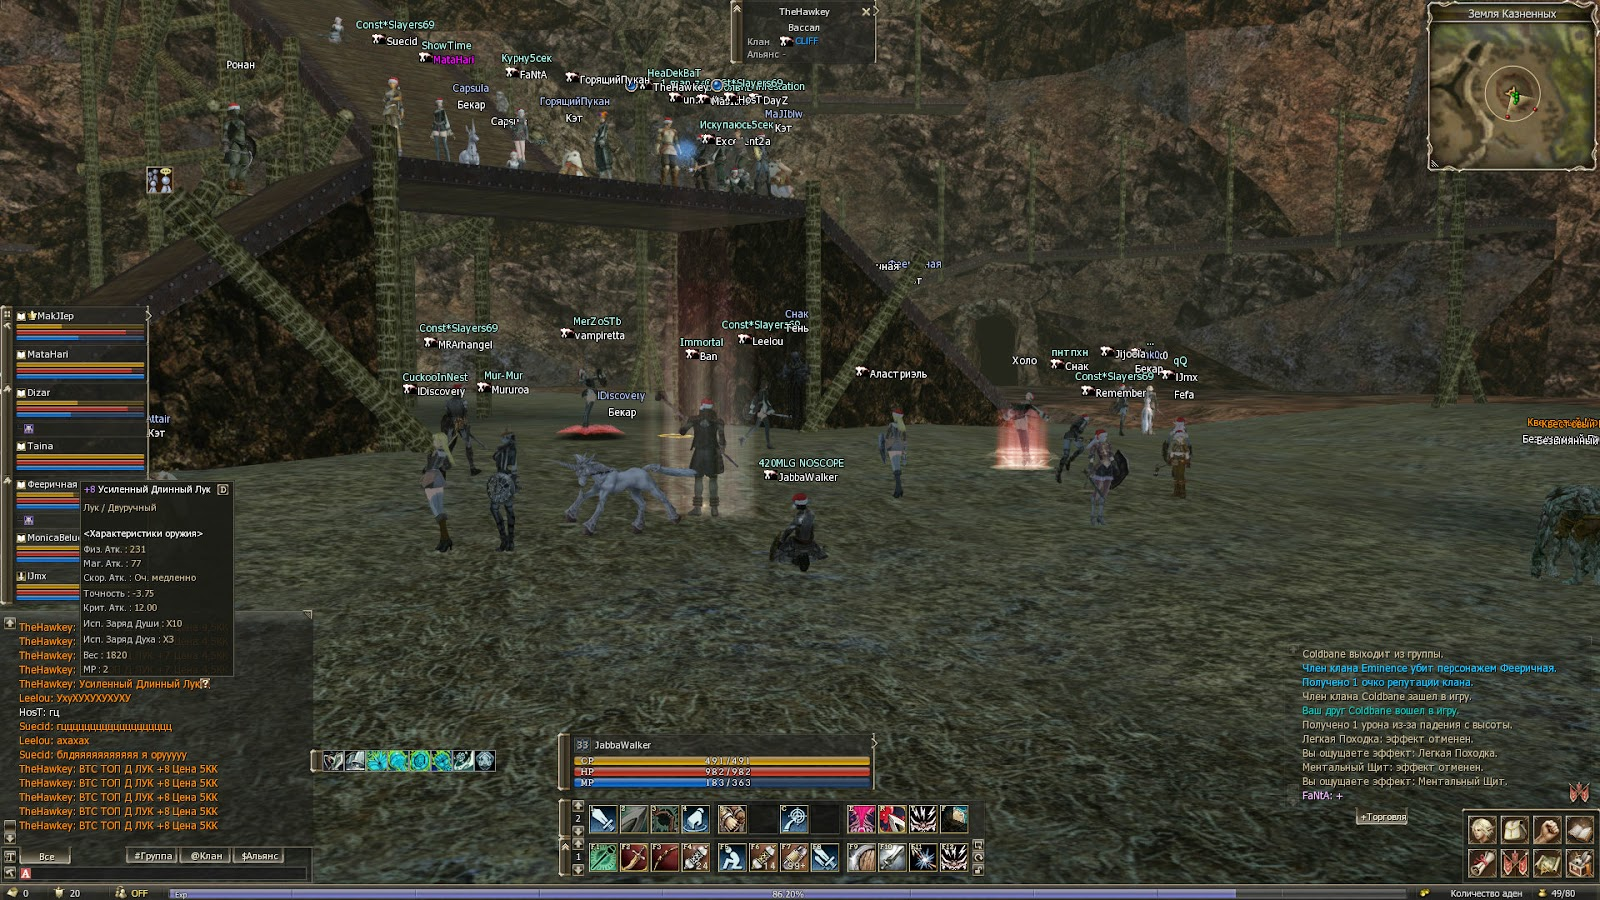 Einhasad: Lineage 2 Classic Over Enchanting